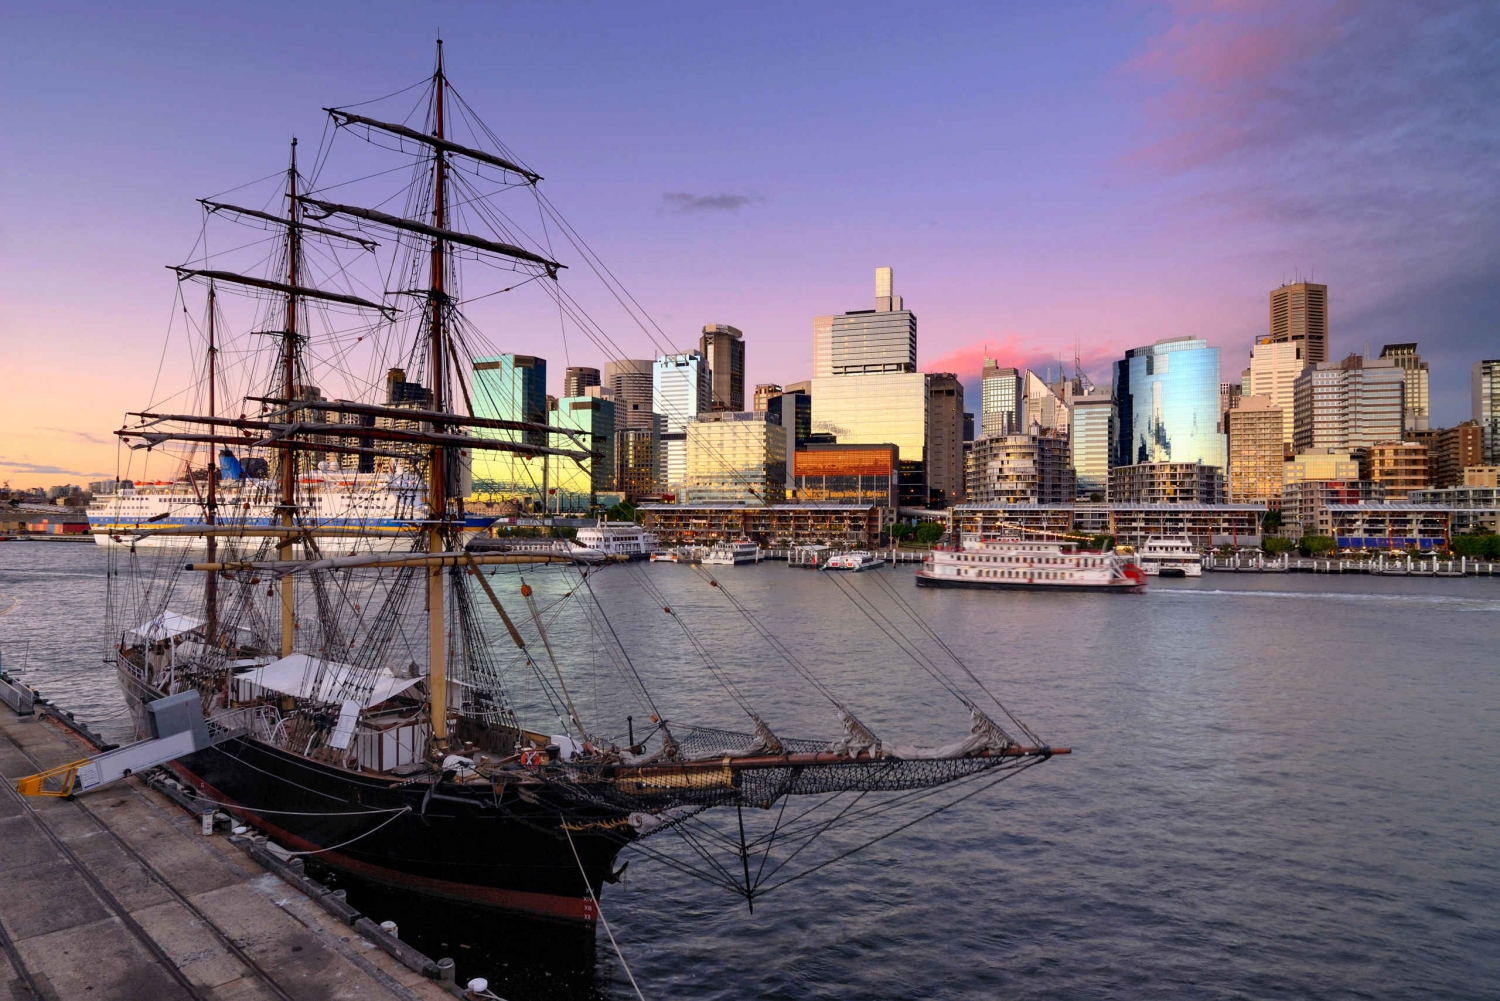 Australian National Maritime Museum: All-Inclusive Ticket